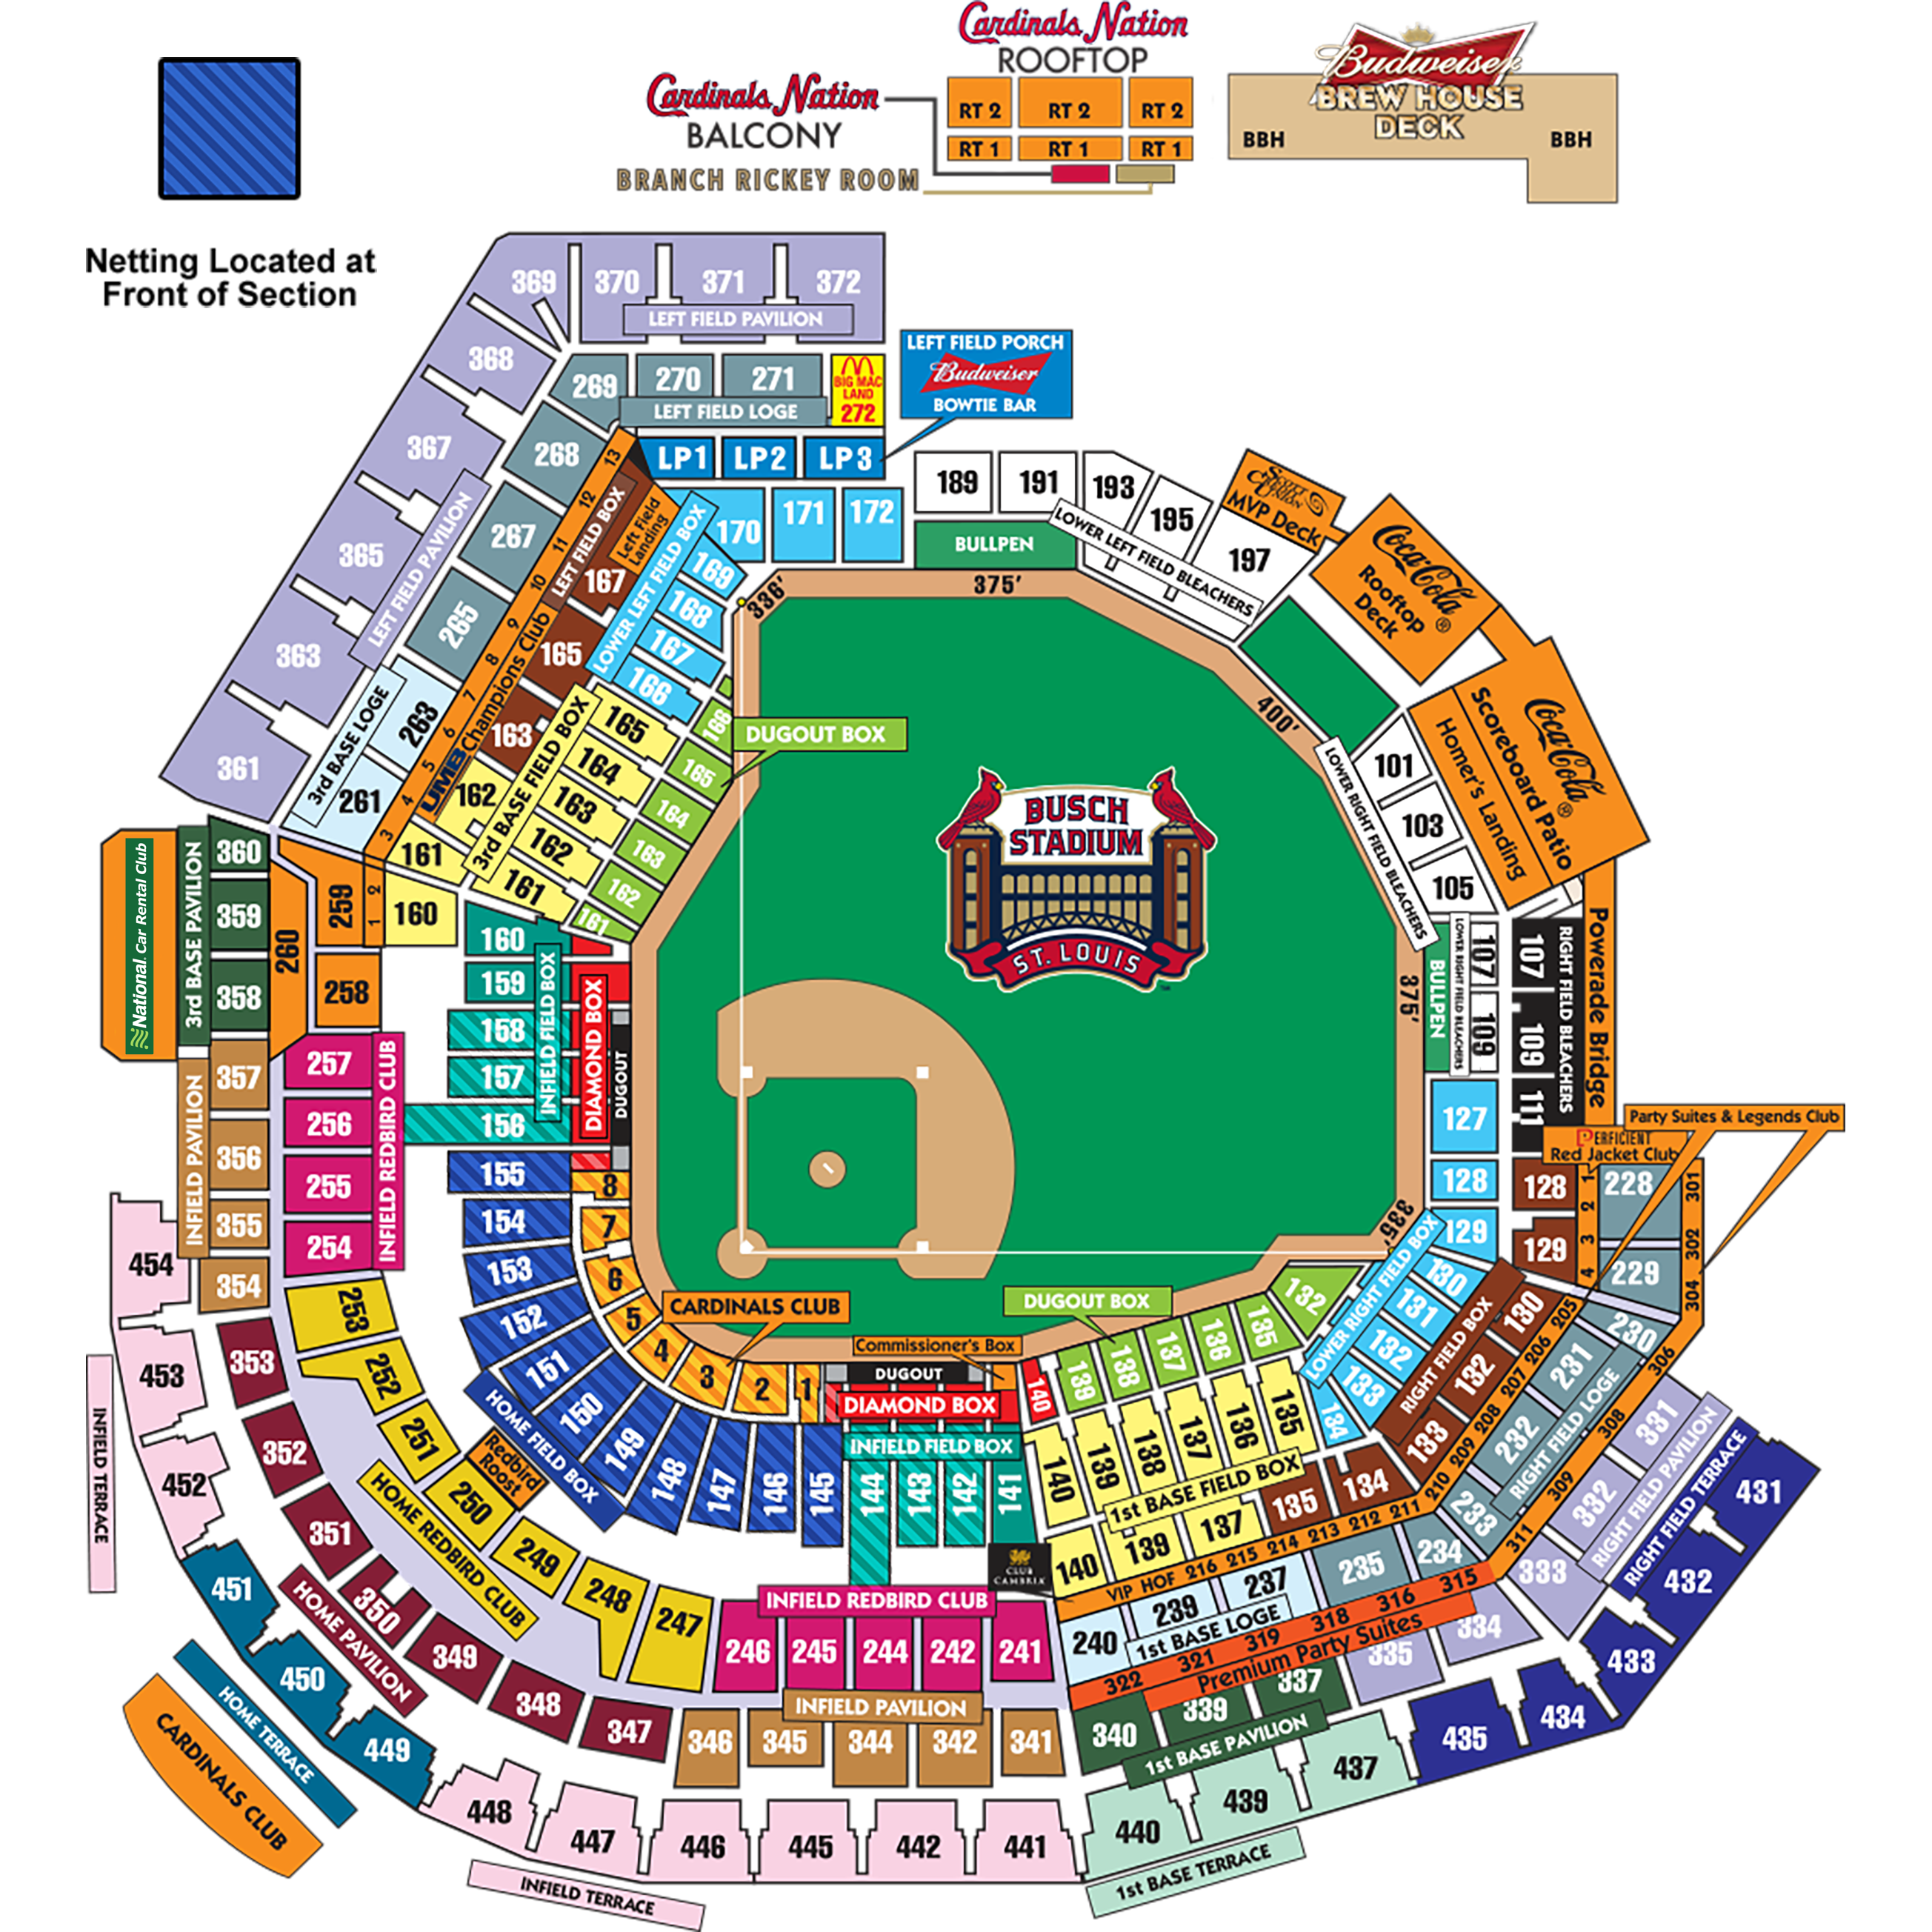 Busch Stadium Seat Map Busch Stadium Netting | St. Louis Cardinals Busch Stadium Seat Map